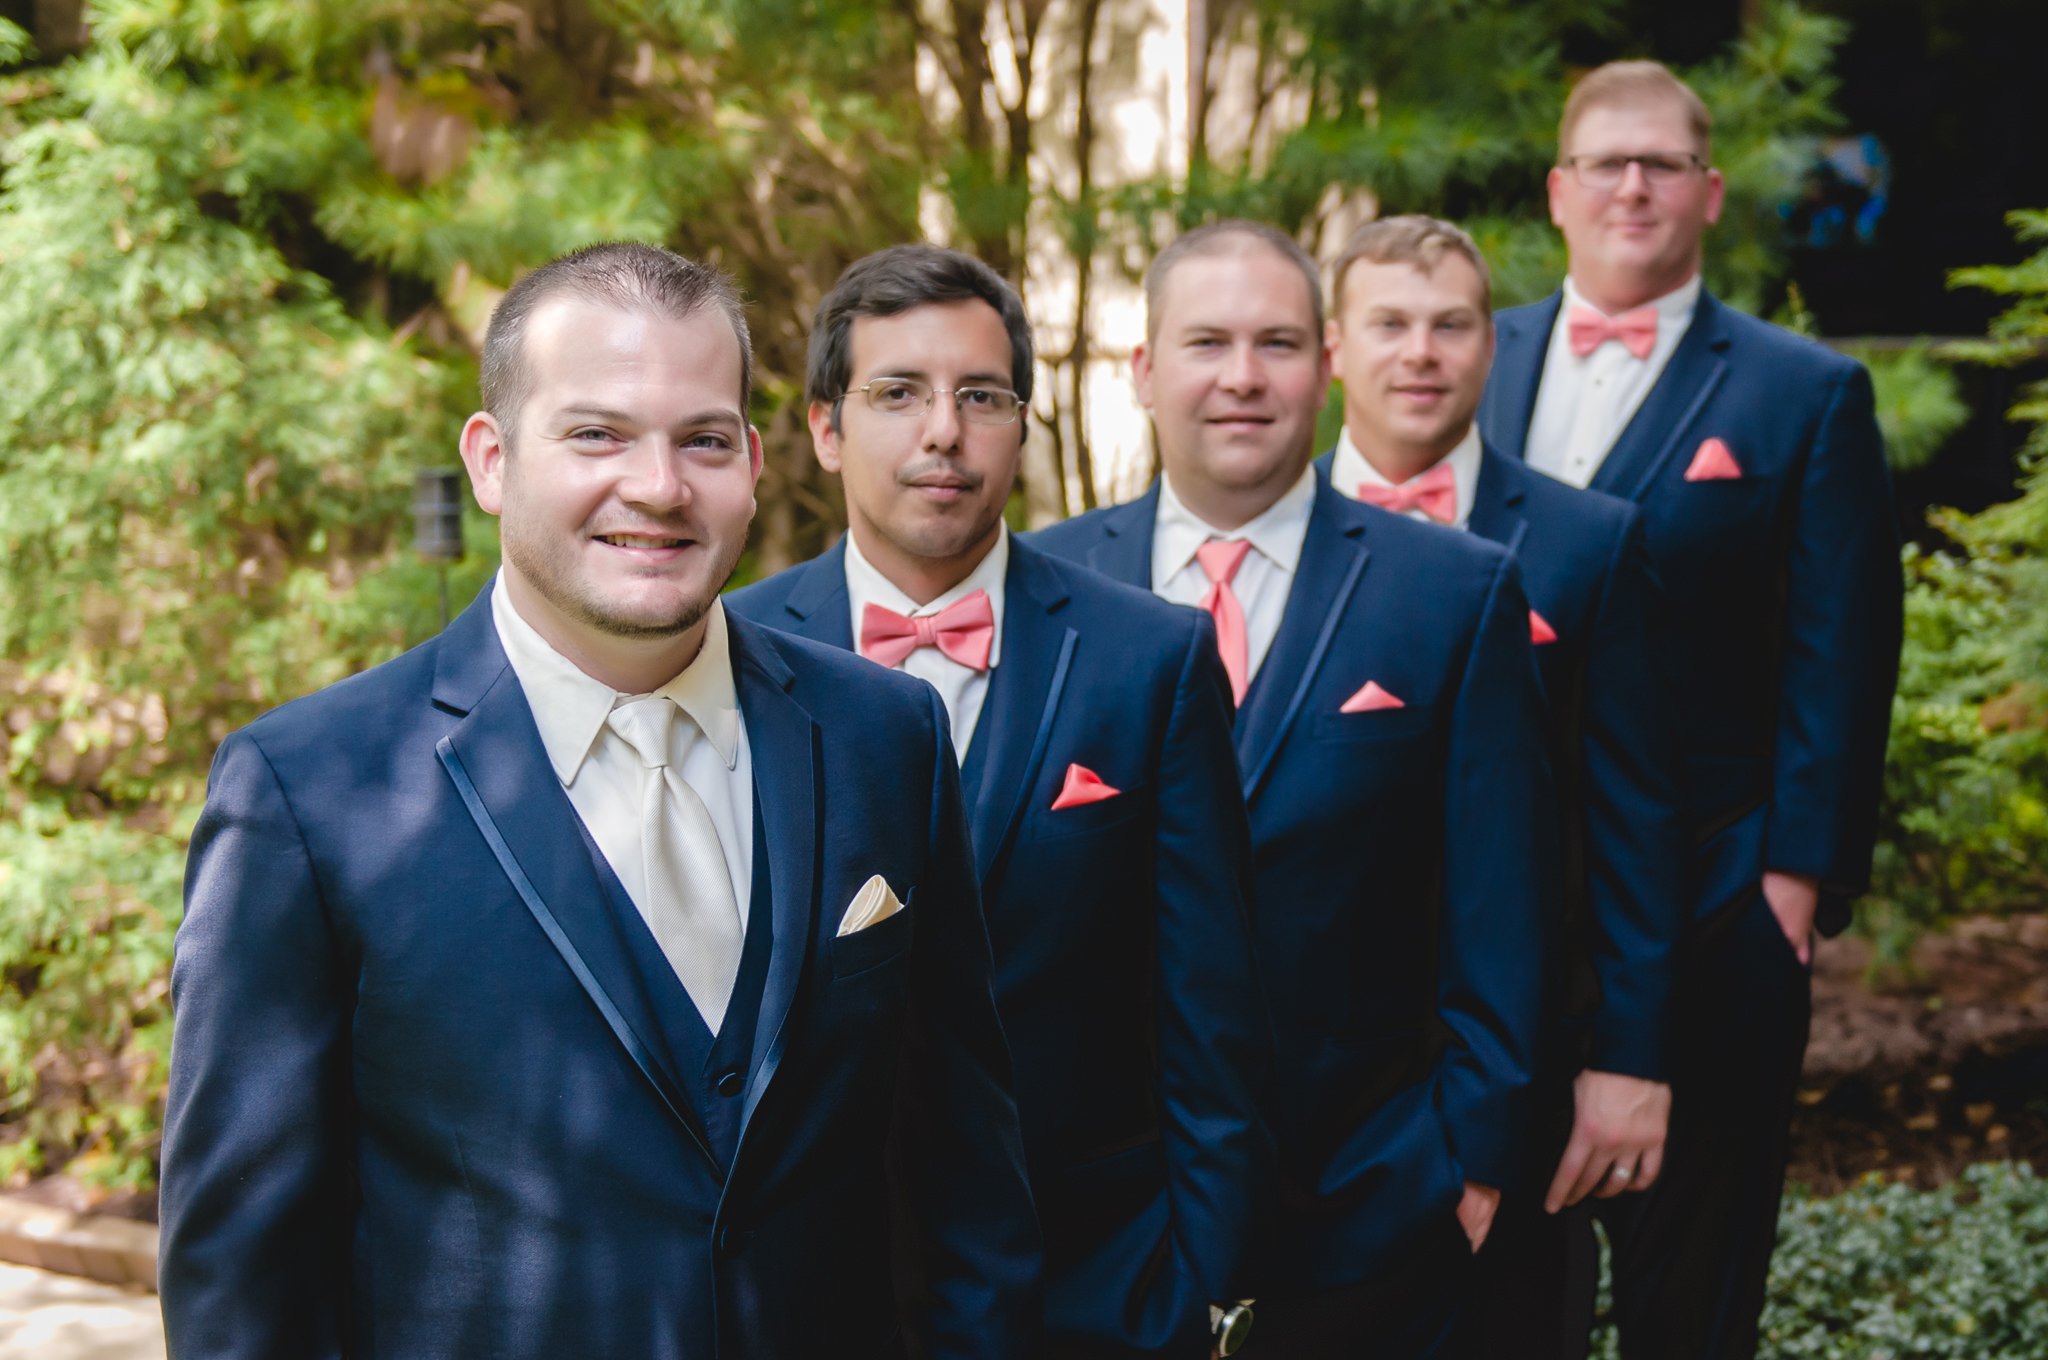 Groom with his groomsmen at the Pittsburgh Airport Marriott courtyard